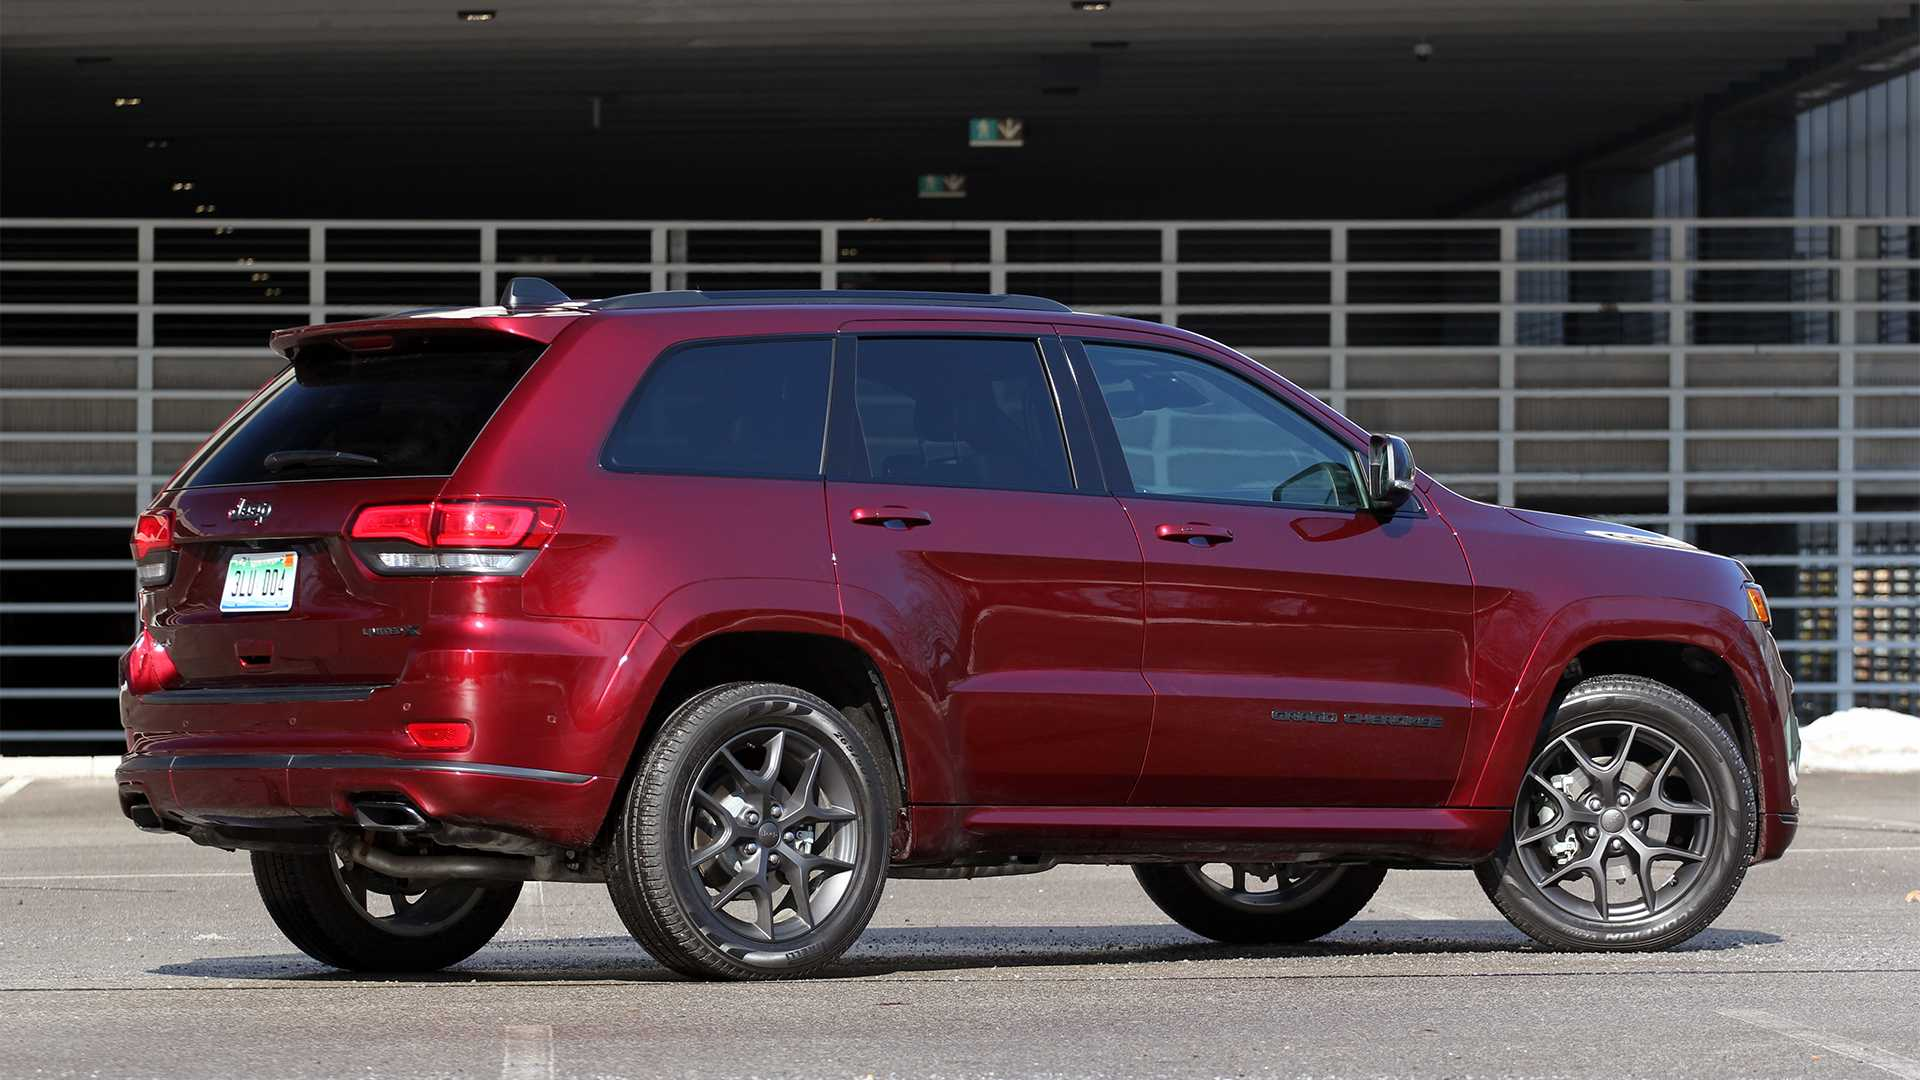 31 The Best 2019 Jeep Grand Cherokee Limited X New Interior Research New by Best 2019 Jeep Grand Cherokee Limited X New Interior